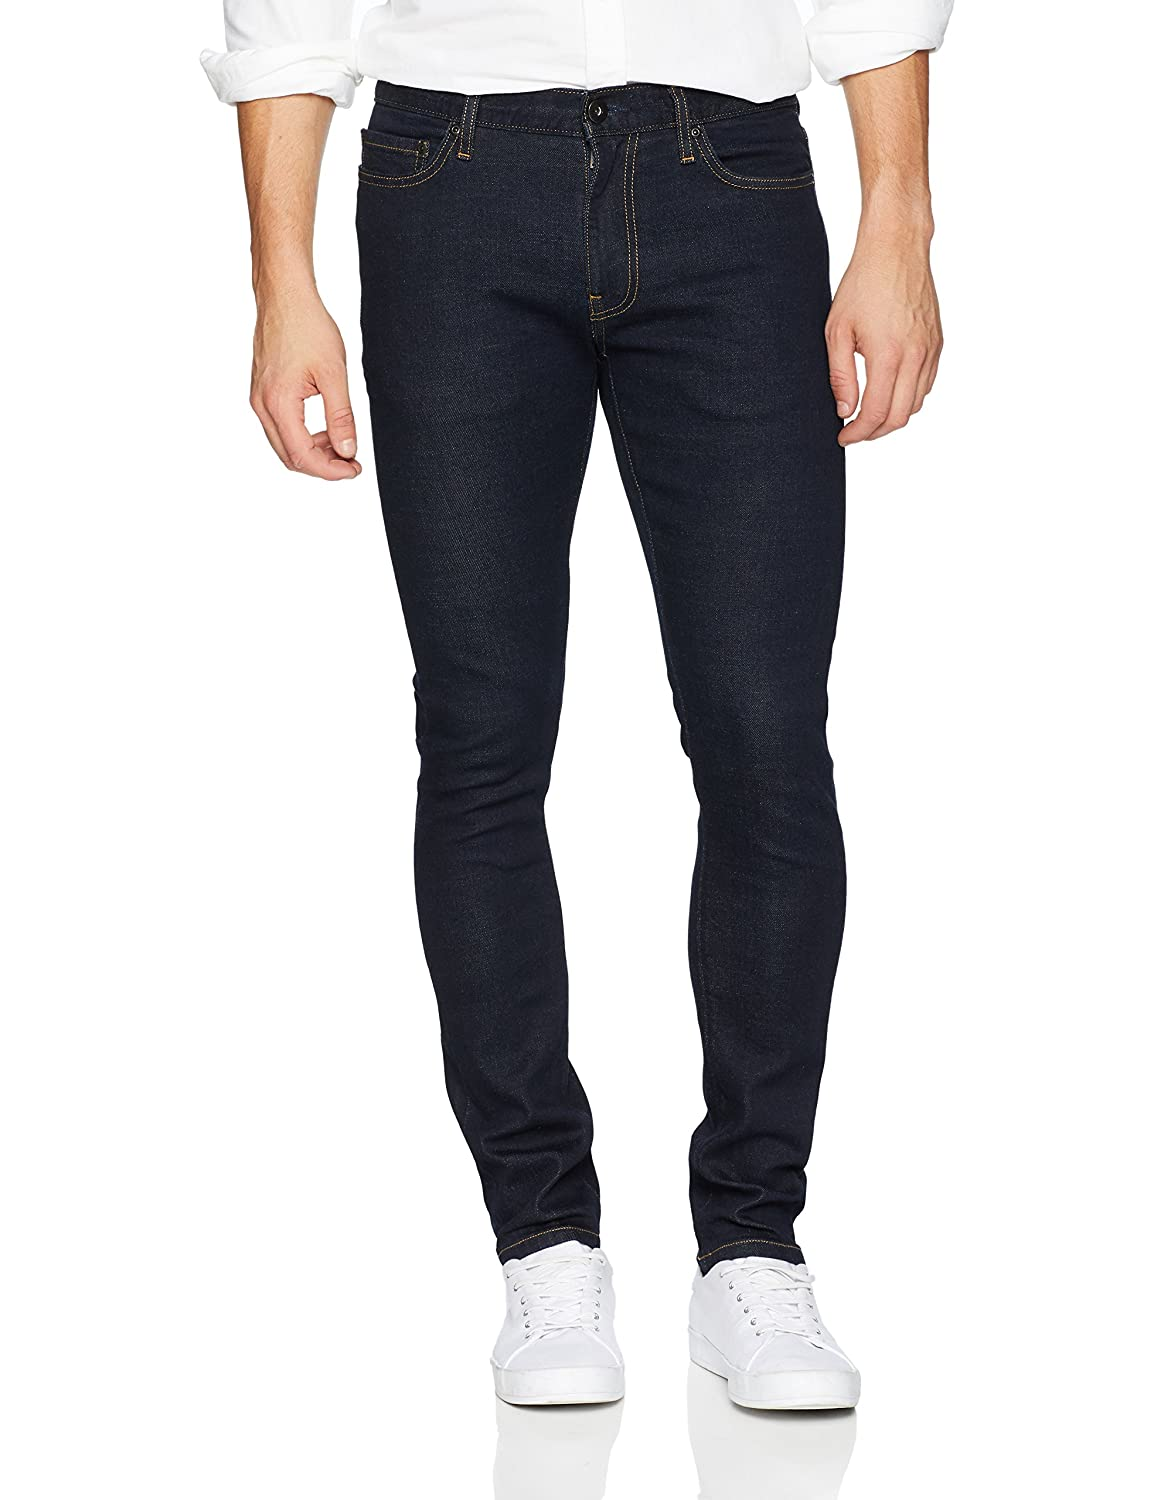 e578345224 1% stretch Elastane for comfort as they break-in with wear. This classic  five-pocket jean features selvedge denim that s ...